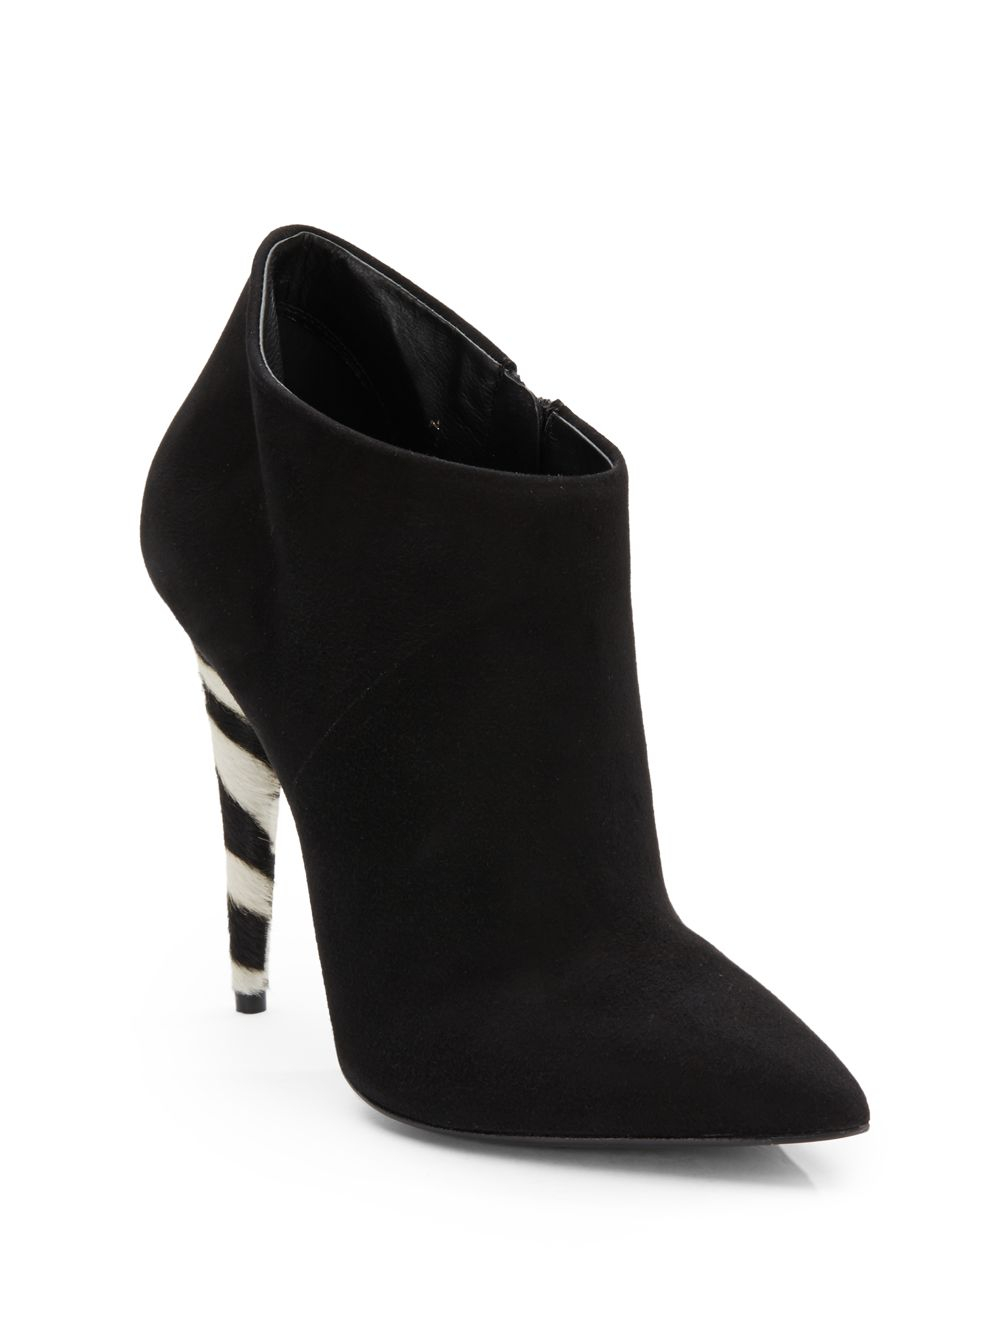 giuseppe zanotti calfhair accented suede ankle boots in